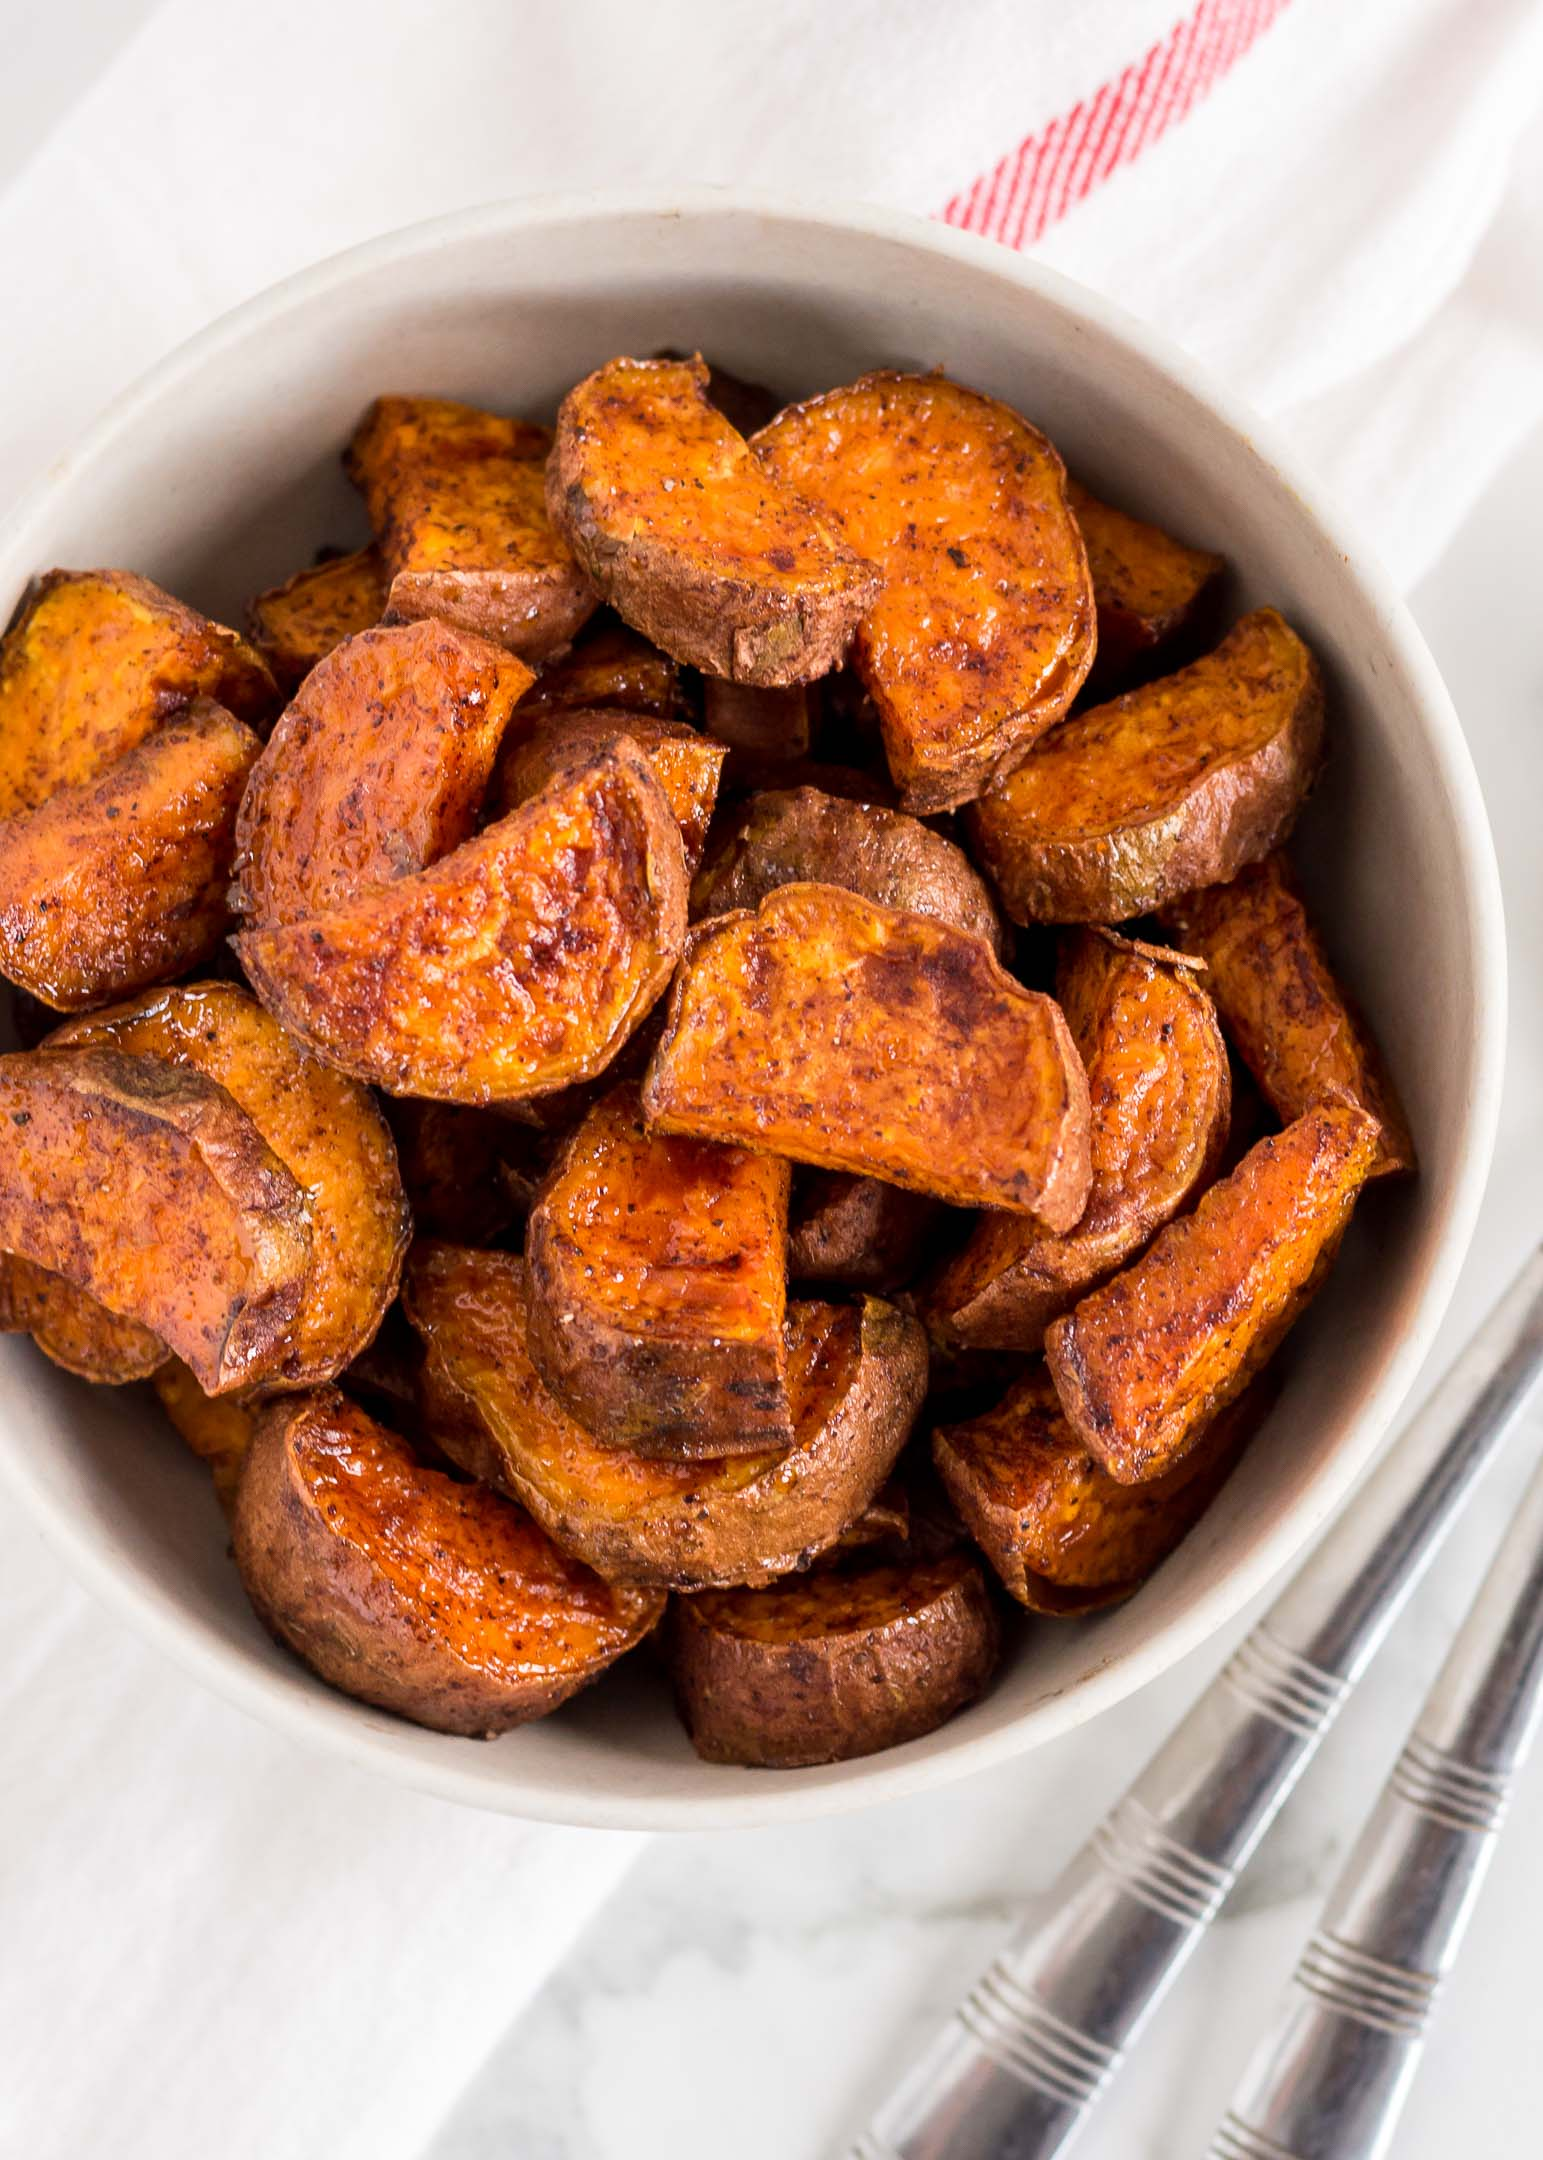 Maple Cinnamon Roasted Sweet Potatoes are simple and healthy side dish to add to any dinner. Here, sweet potatoes are oven-roasted until tender with pure maple syrup and a hint of cinnamon and nutmeg. This easy to make and clean eating recipe is gluten free, dairy free and great for meal prep too.